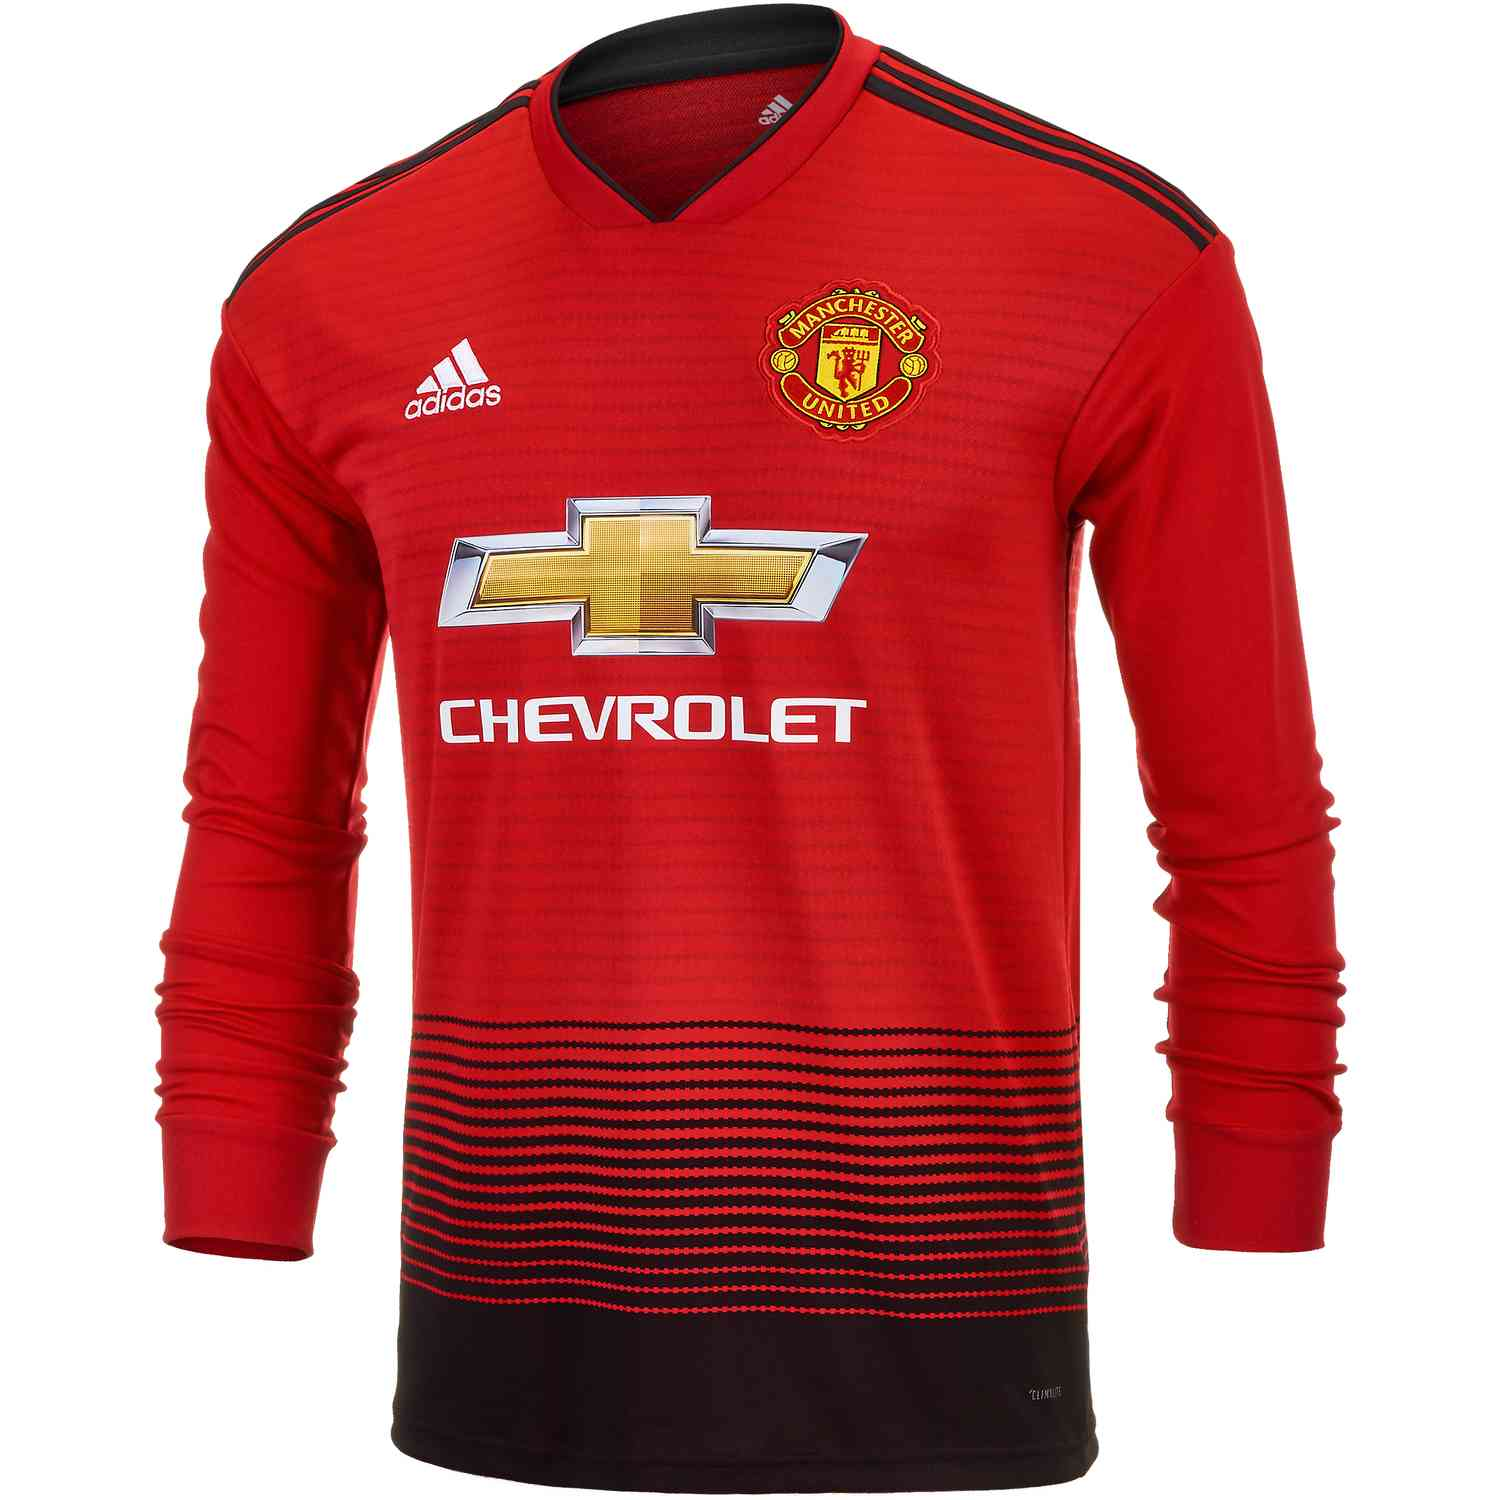 daeaa89fb03 adidas Manchester United Home L S Jersey 2018-19 - SoccerPro